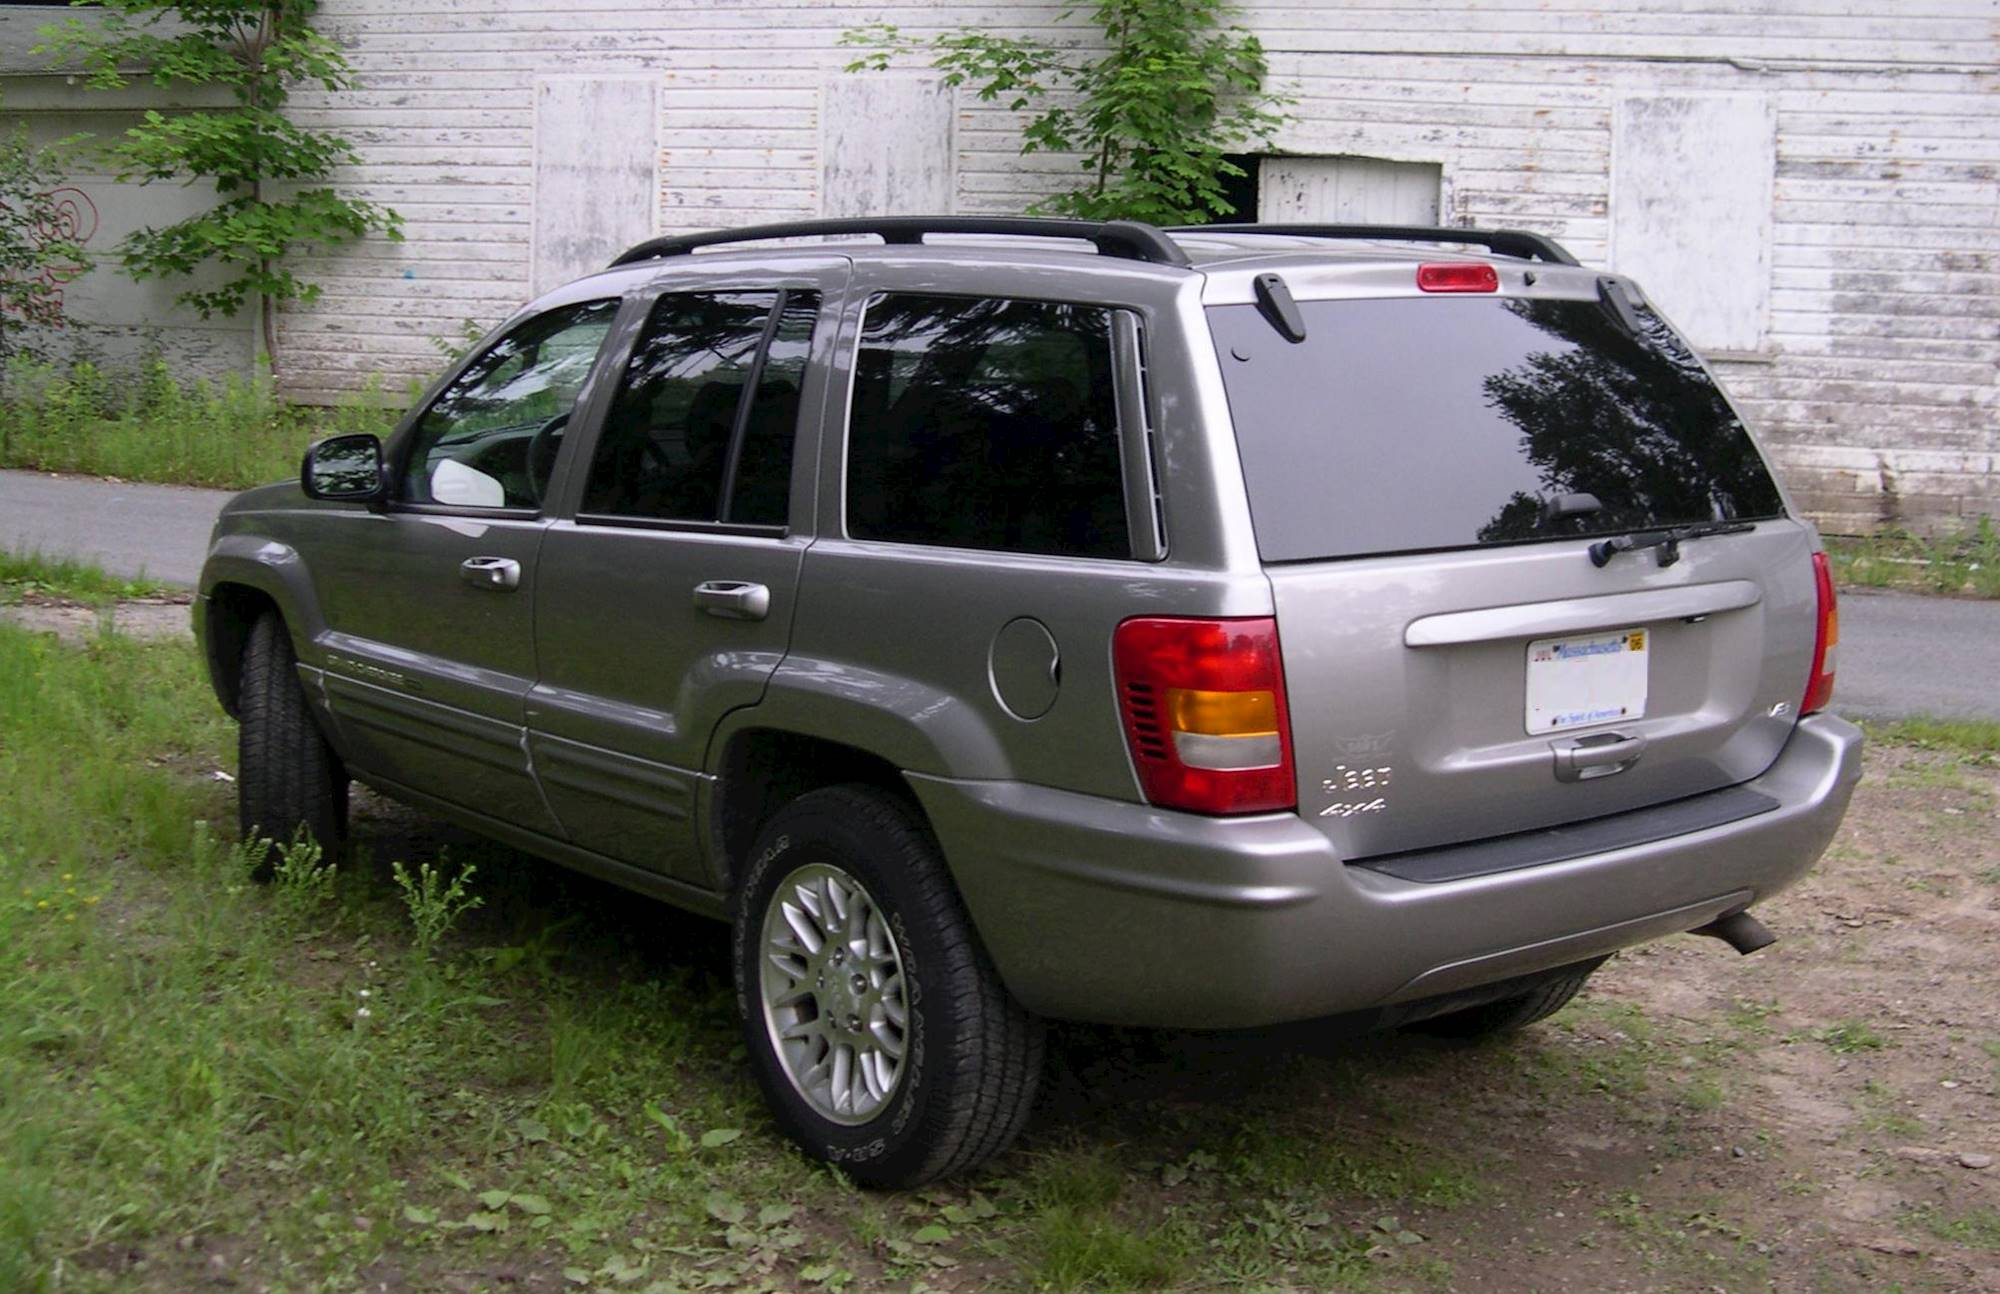 cherokee jeep grand 2002 wj rear 2006 laredo file commons limited 7l 4x4 2000 v8 suv door light 4wd led